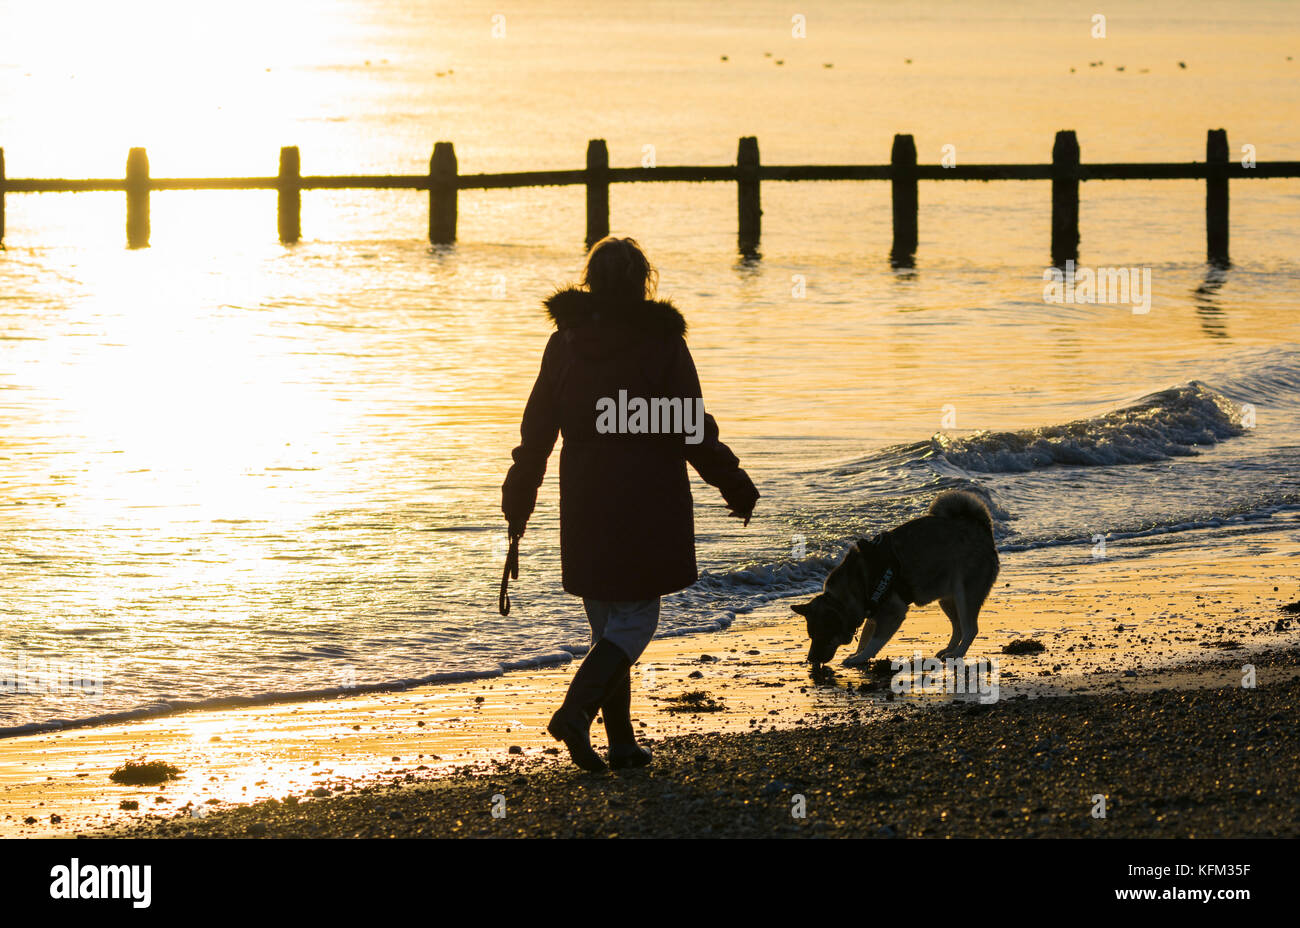 Woman walking a dog on the beach as the sun goes down in Autumn in the UK. - Stock Image